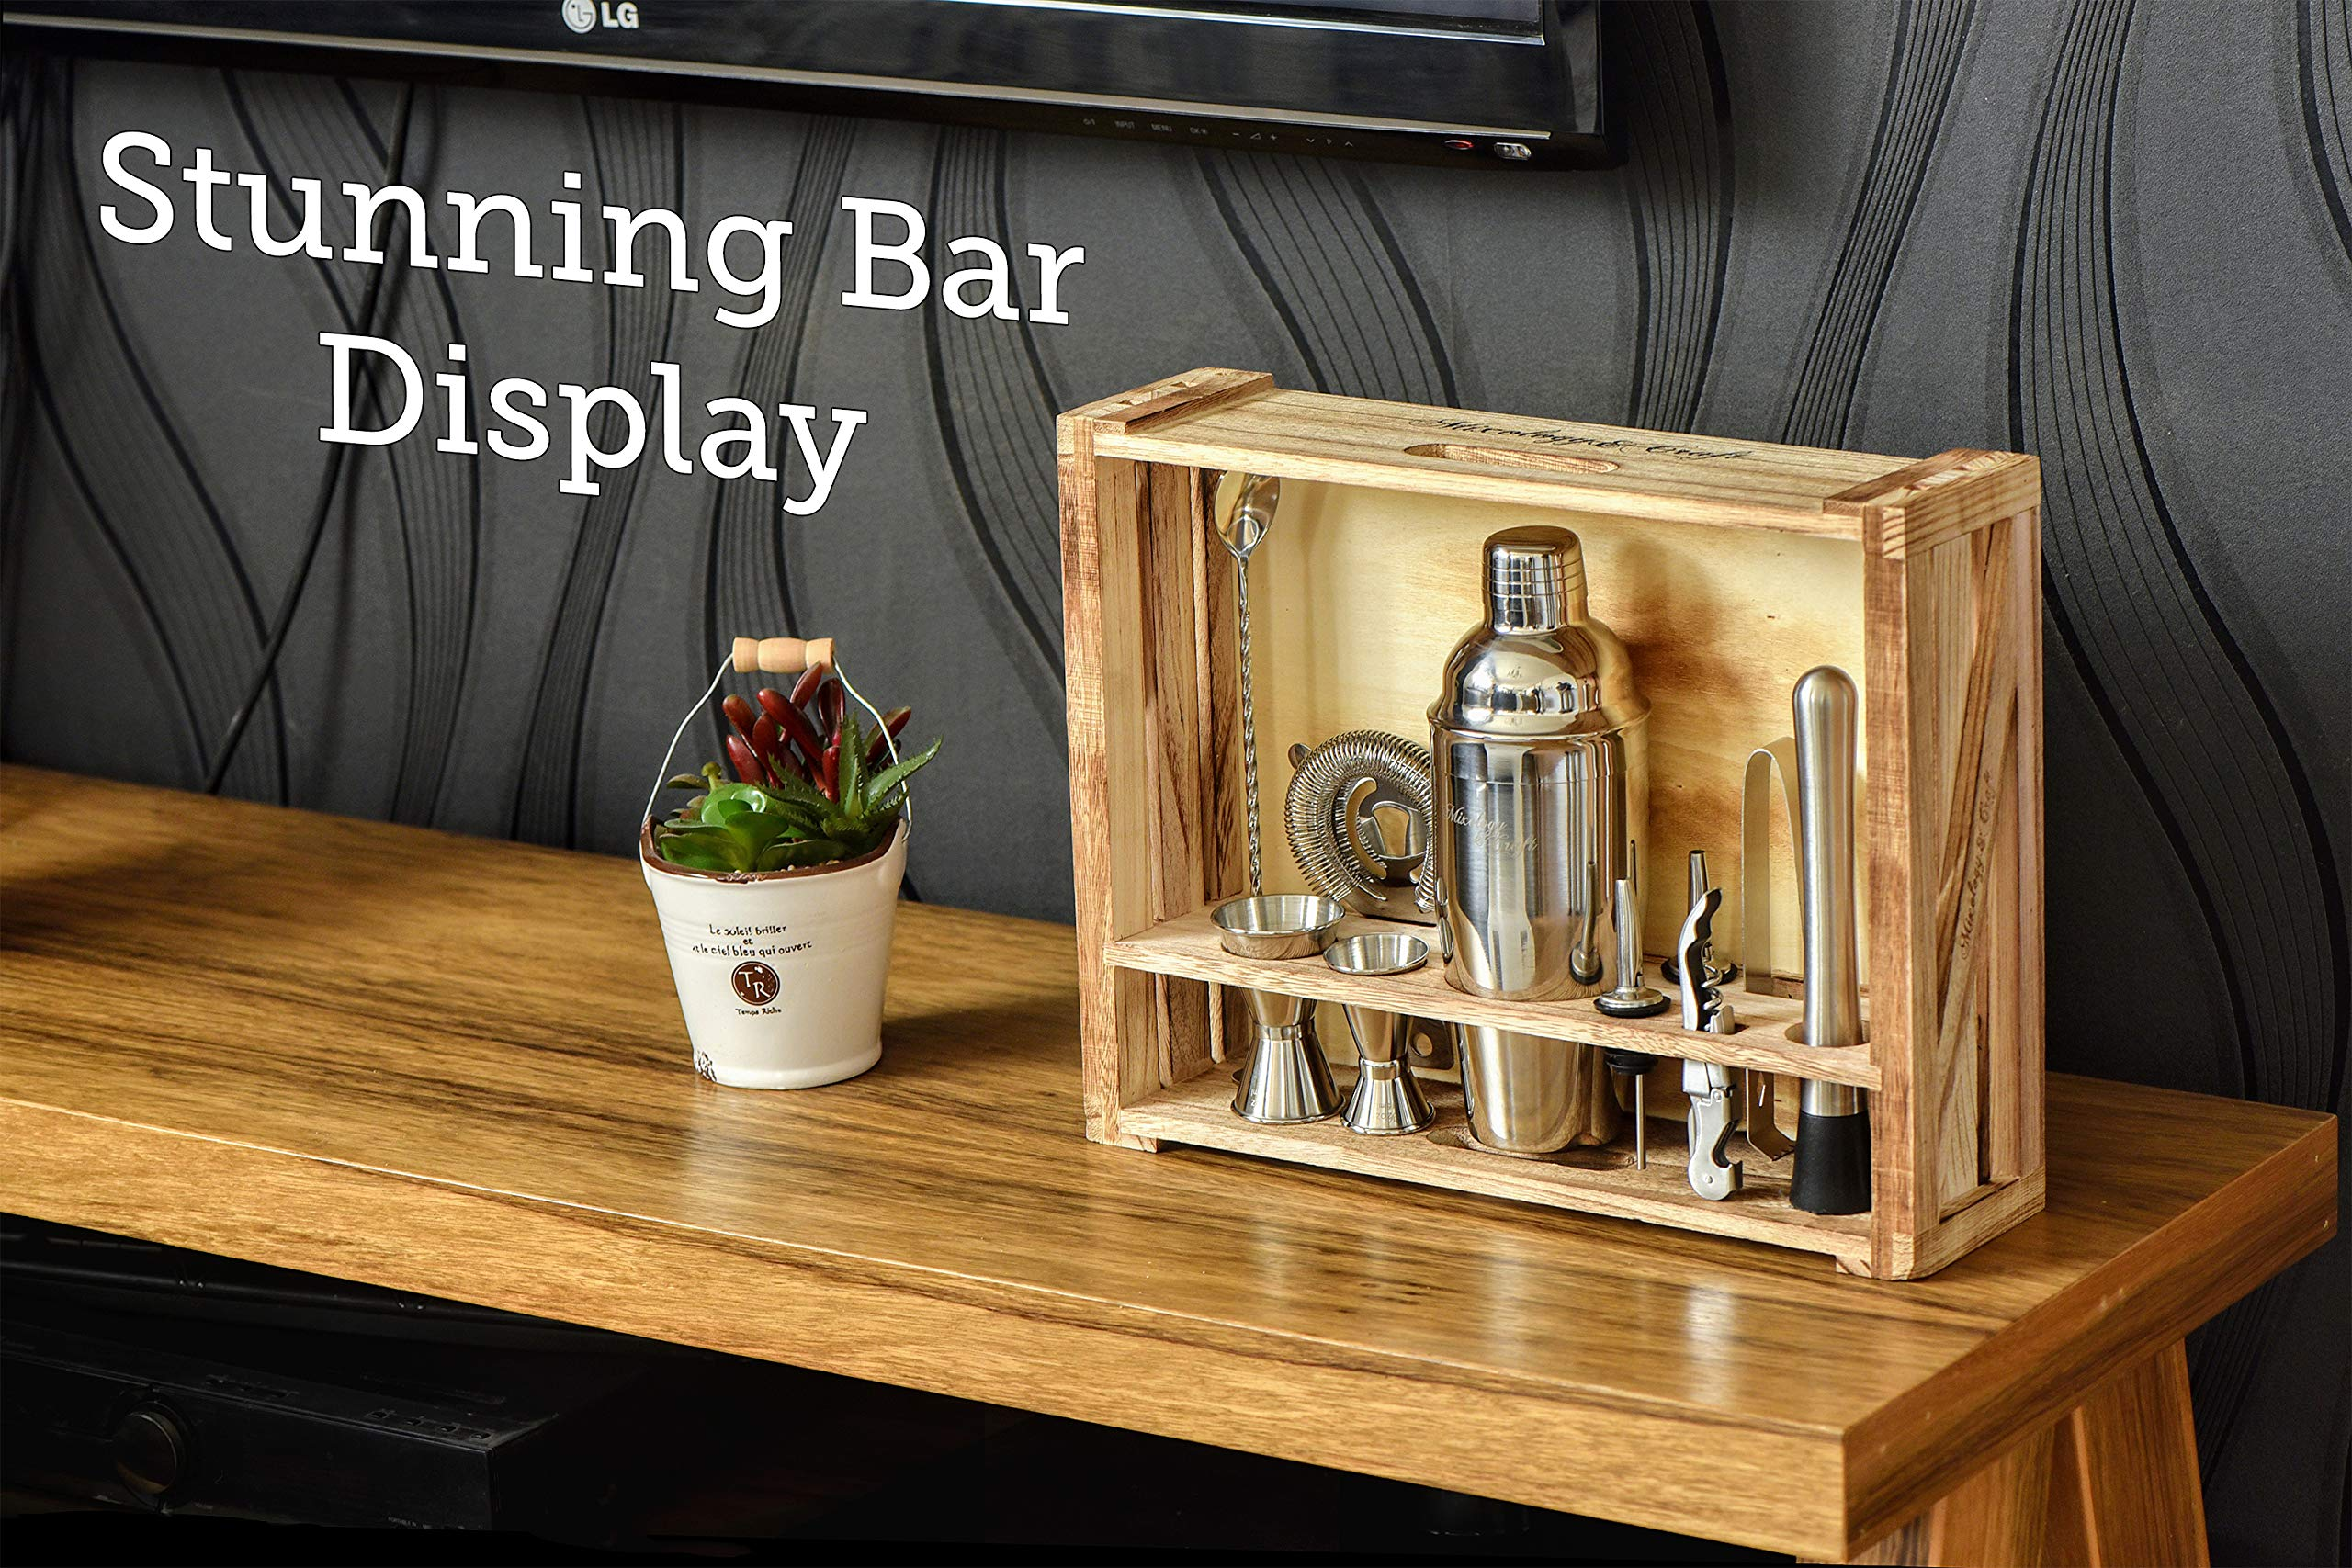 Mixology Bartender Kit: 11-Piece Bar Tool Set with Rustic Wood Stand - Perfect Home Bartending Kit and Cocktail Shaker Set For an Awesome Drink Mixing Experience - Exclusive Cocktail Recipes Bonus by Mixology & Craft (Image #5)